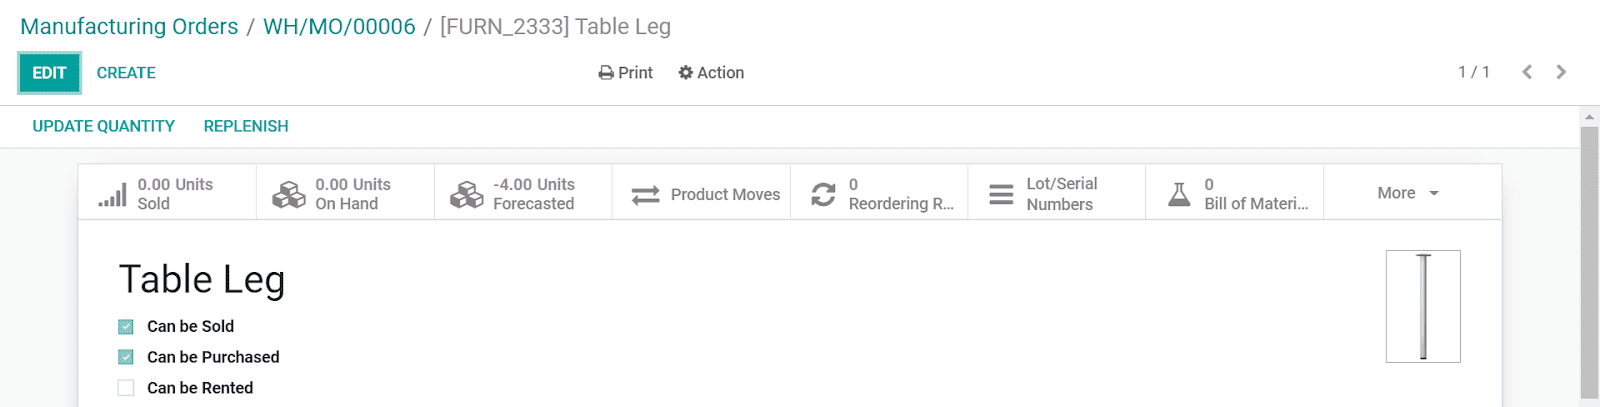 handle-manufacturing-orders-effectively-with-odoo-cybrosys